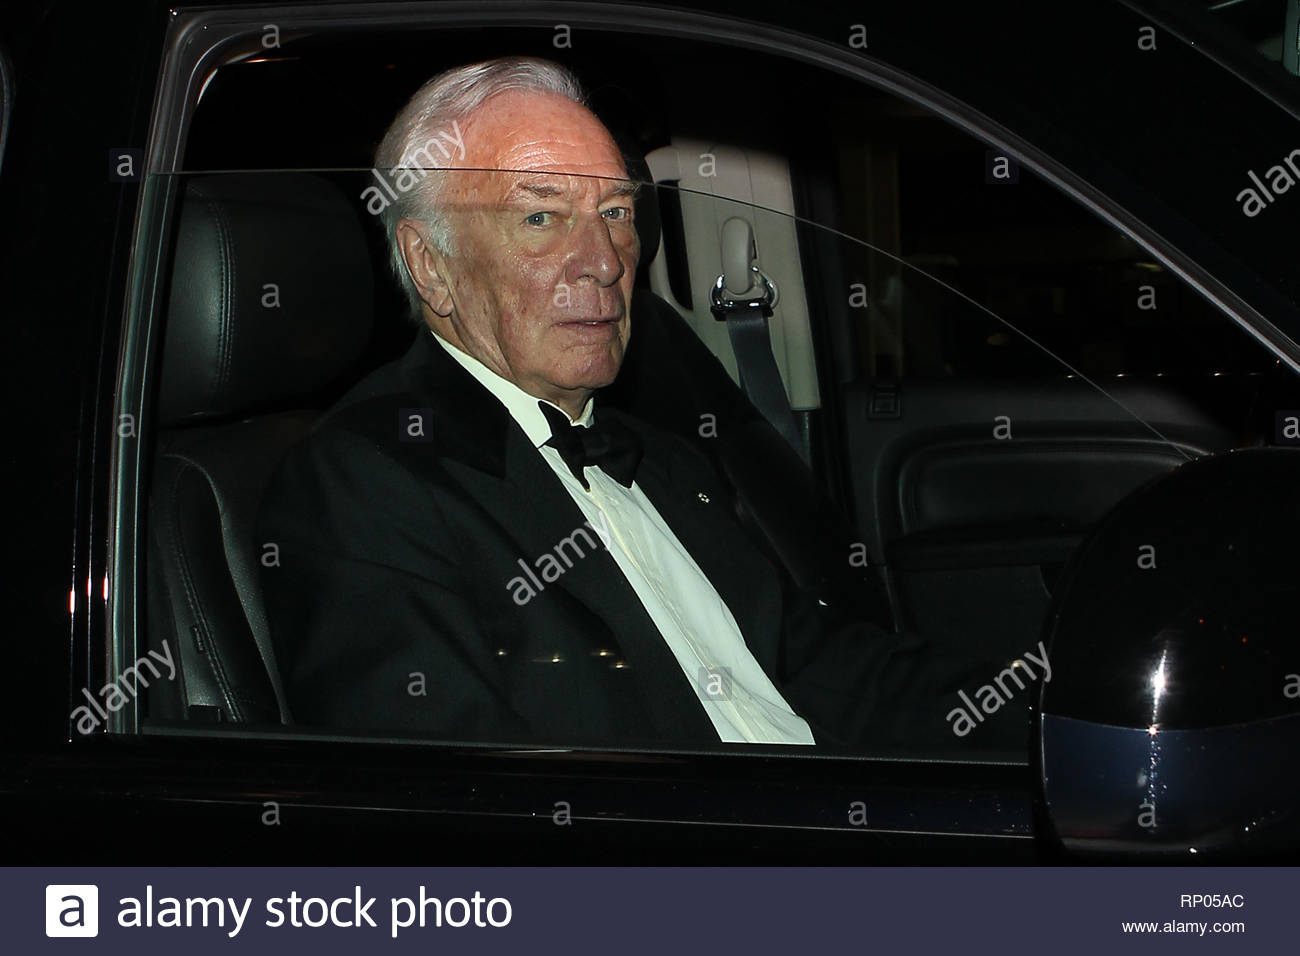 EXCLUSIVE* West Hollywood, CA - Christopher Plummer greets